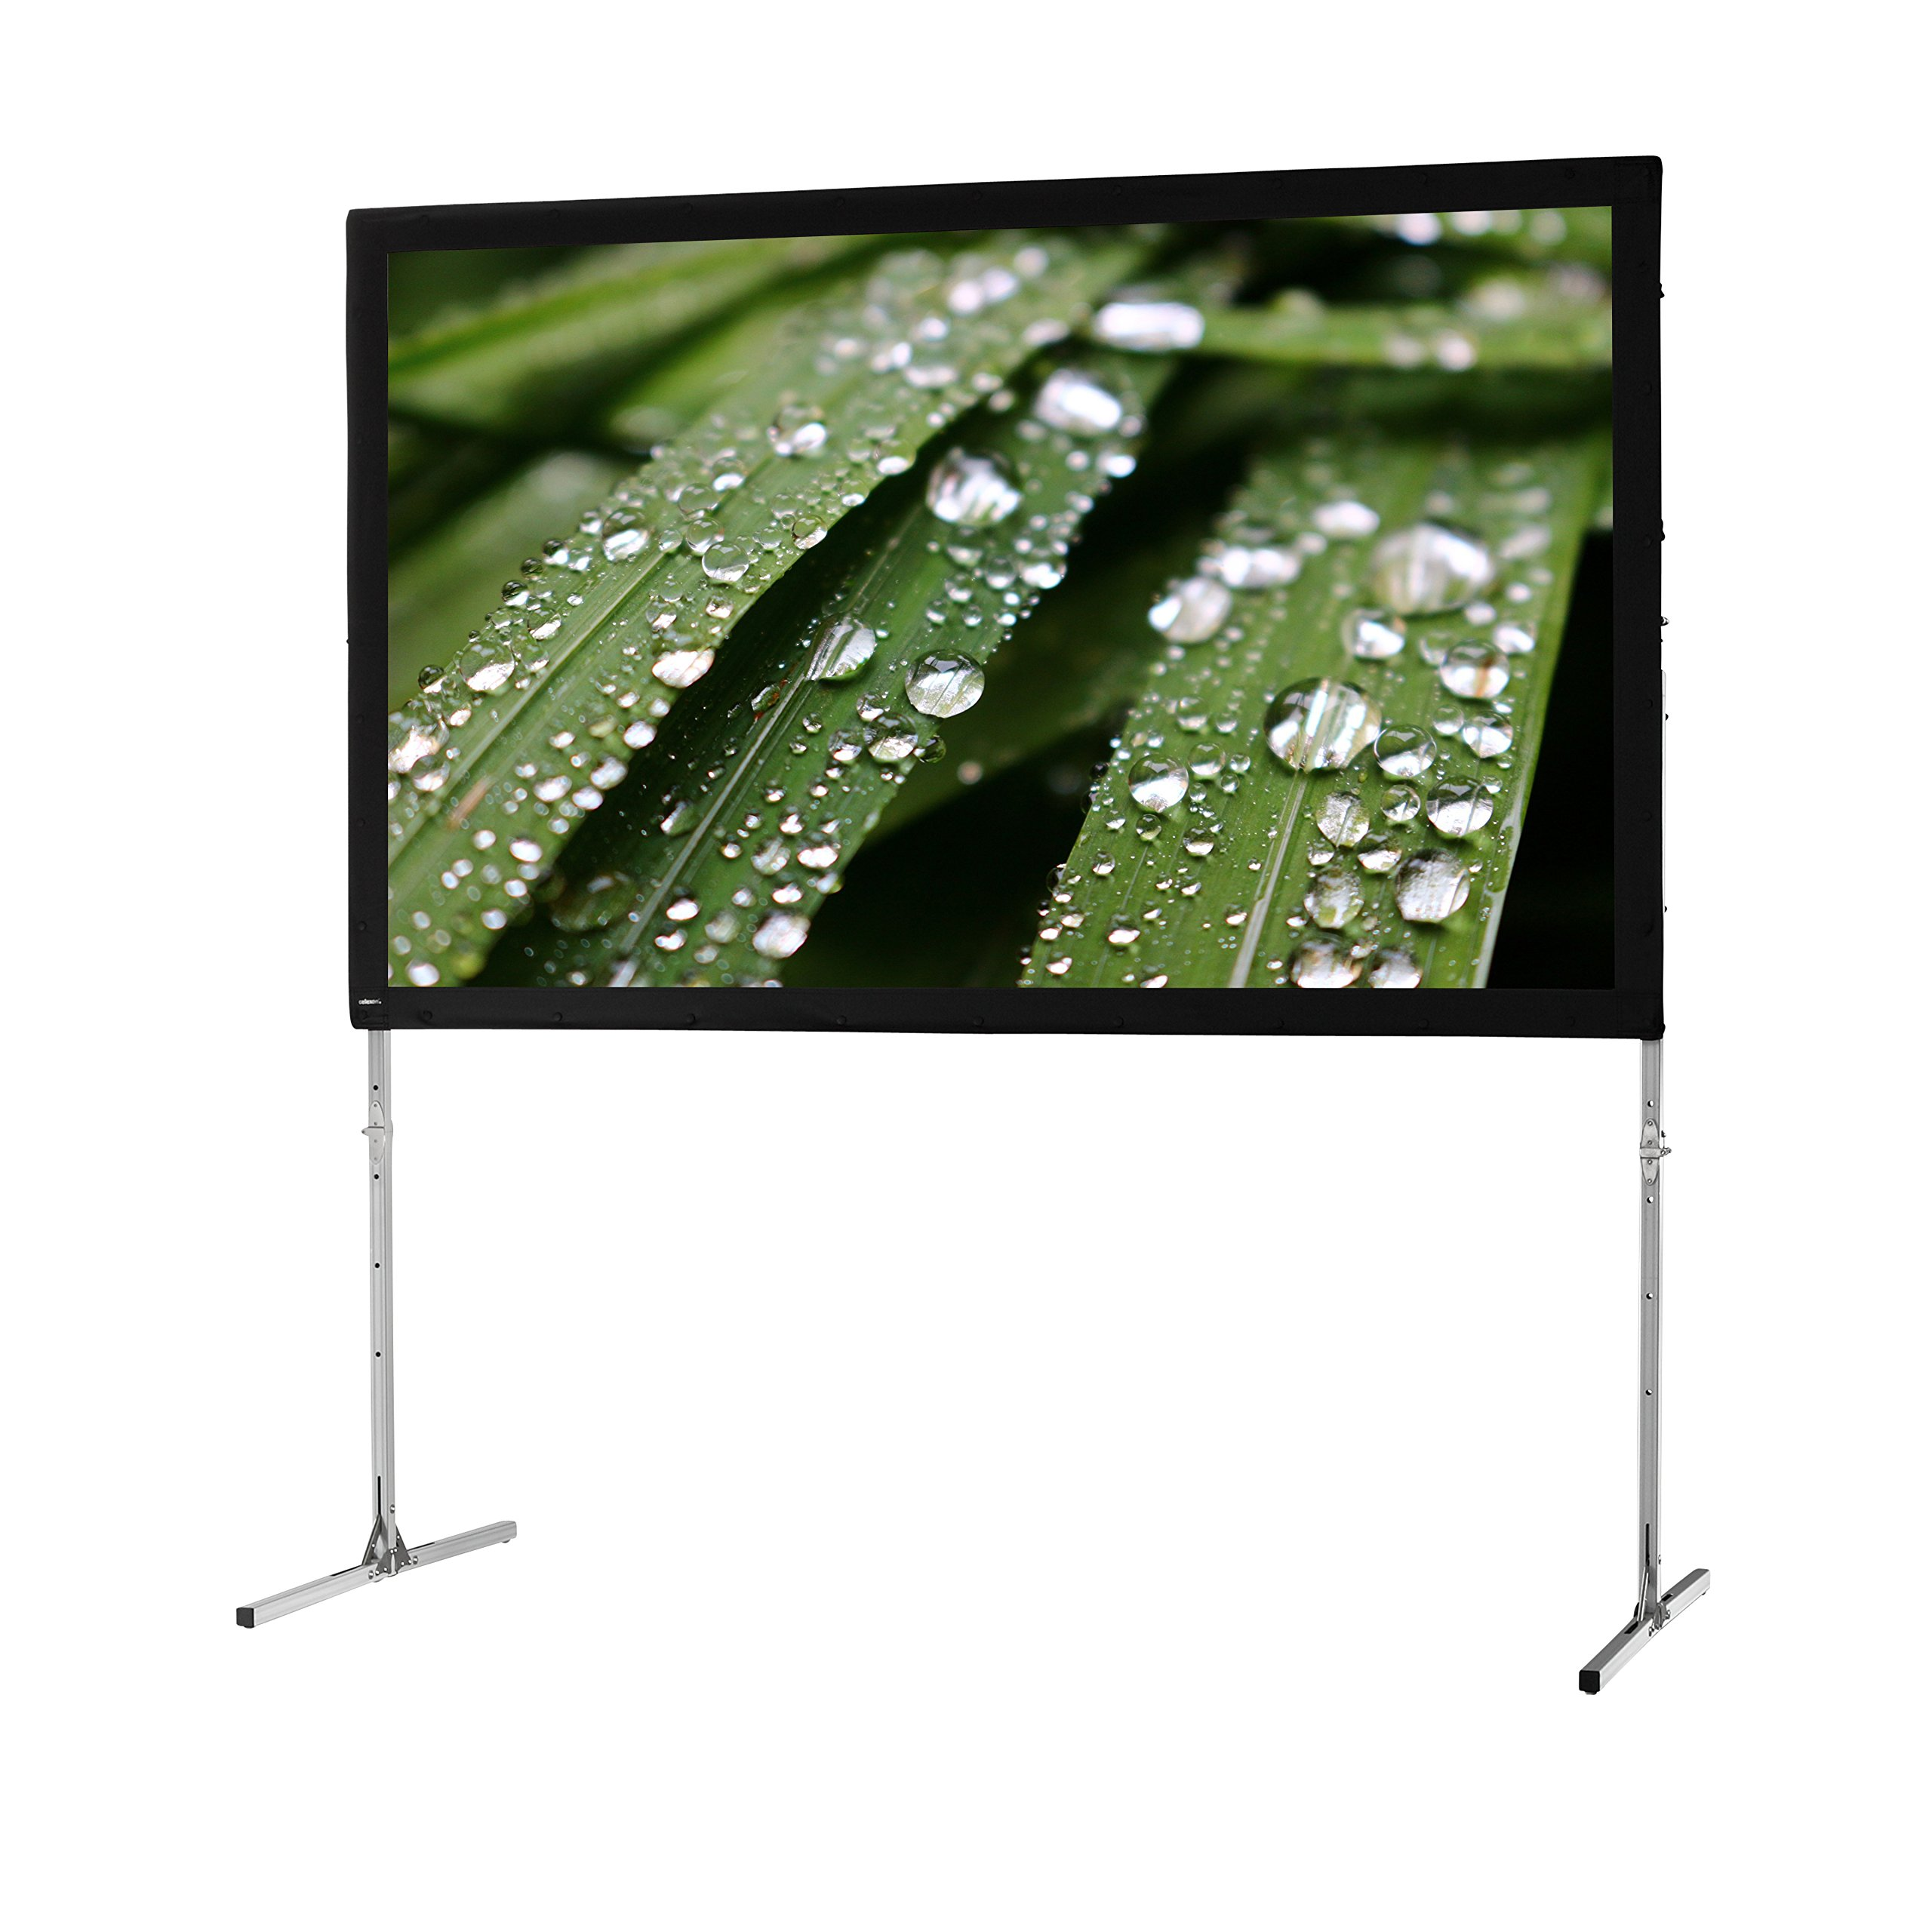 "celexon 170"" Folding Frame Screen Mobile Expert, Front Projection Screen, 16:10 Format, Flightcase for transport & storage by Celexon"